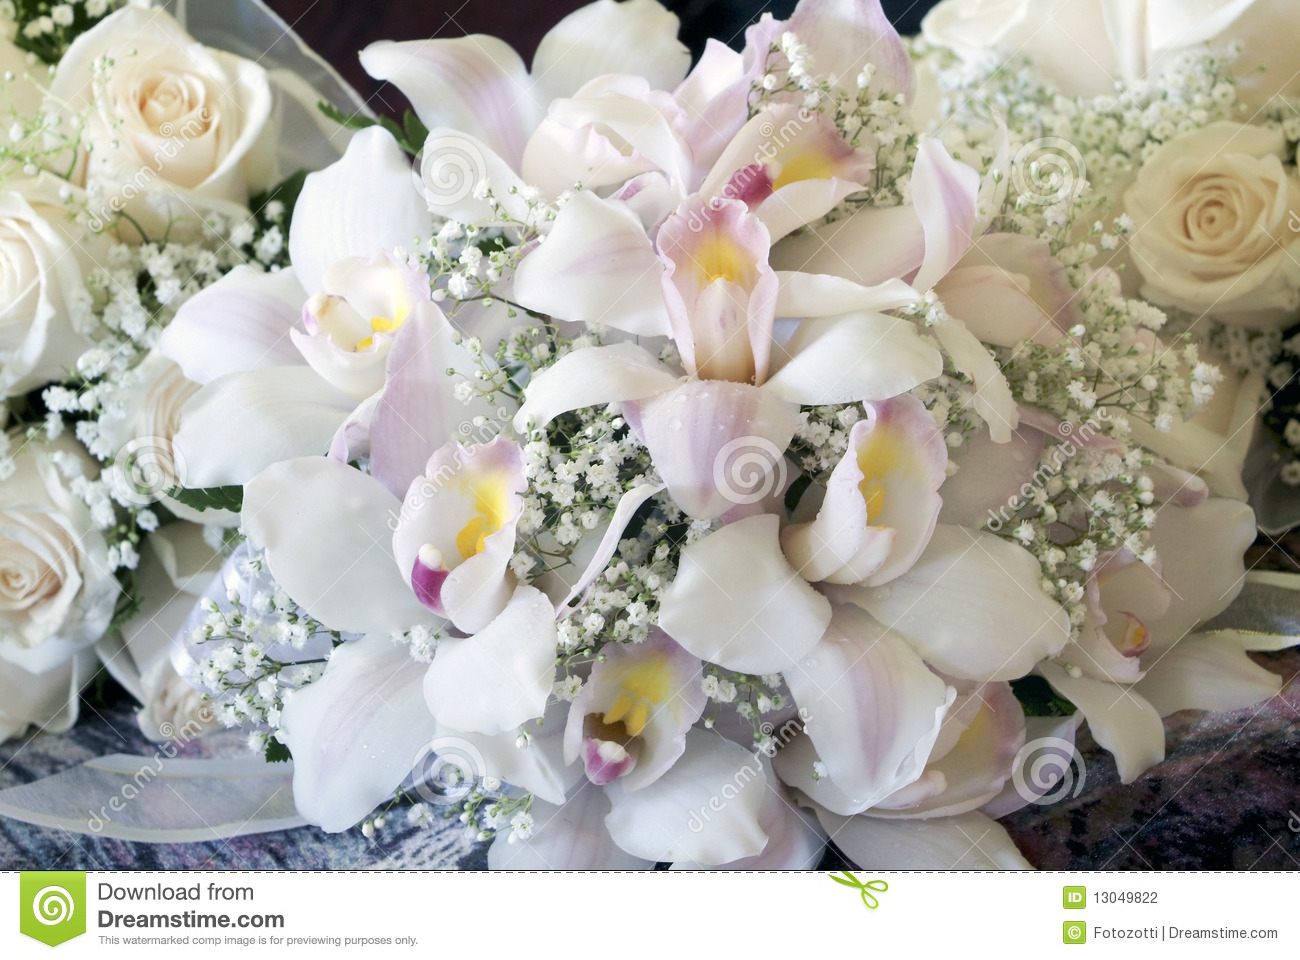 Orchid flower bouquet stock photo. Image of plant, flower - 13049822